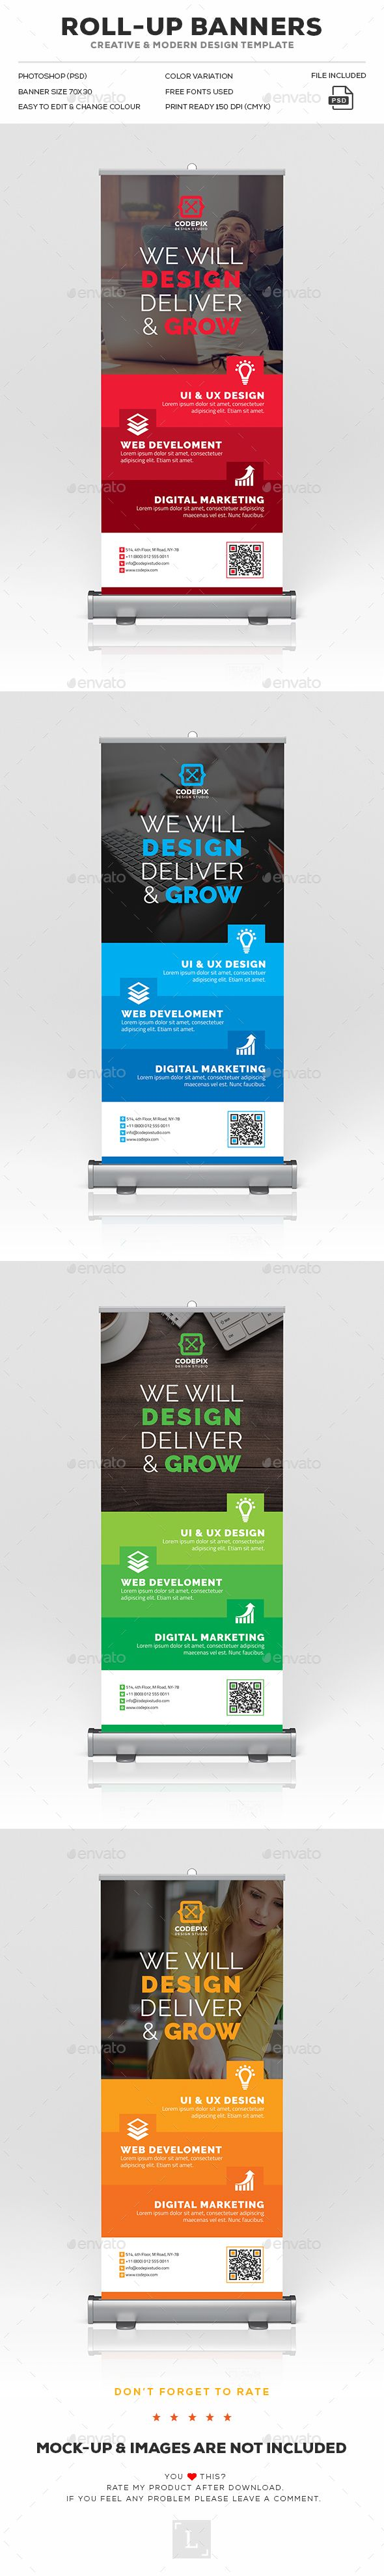 Corporate Roll-Up Banner Template PSD. Download here: https://graphicriver.net/item/corporate-rollup-banner/17473866?ref=ksioks